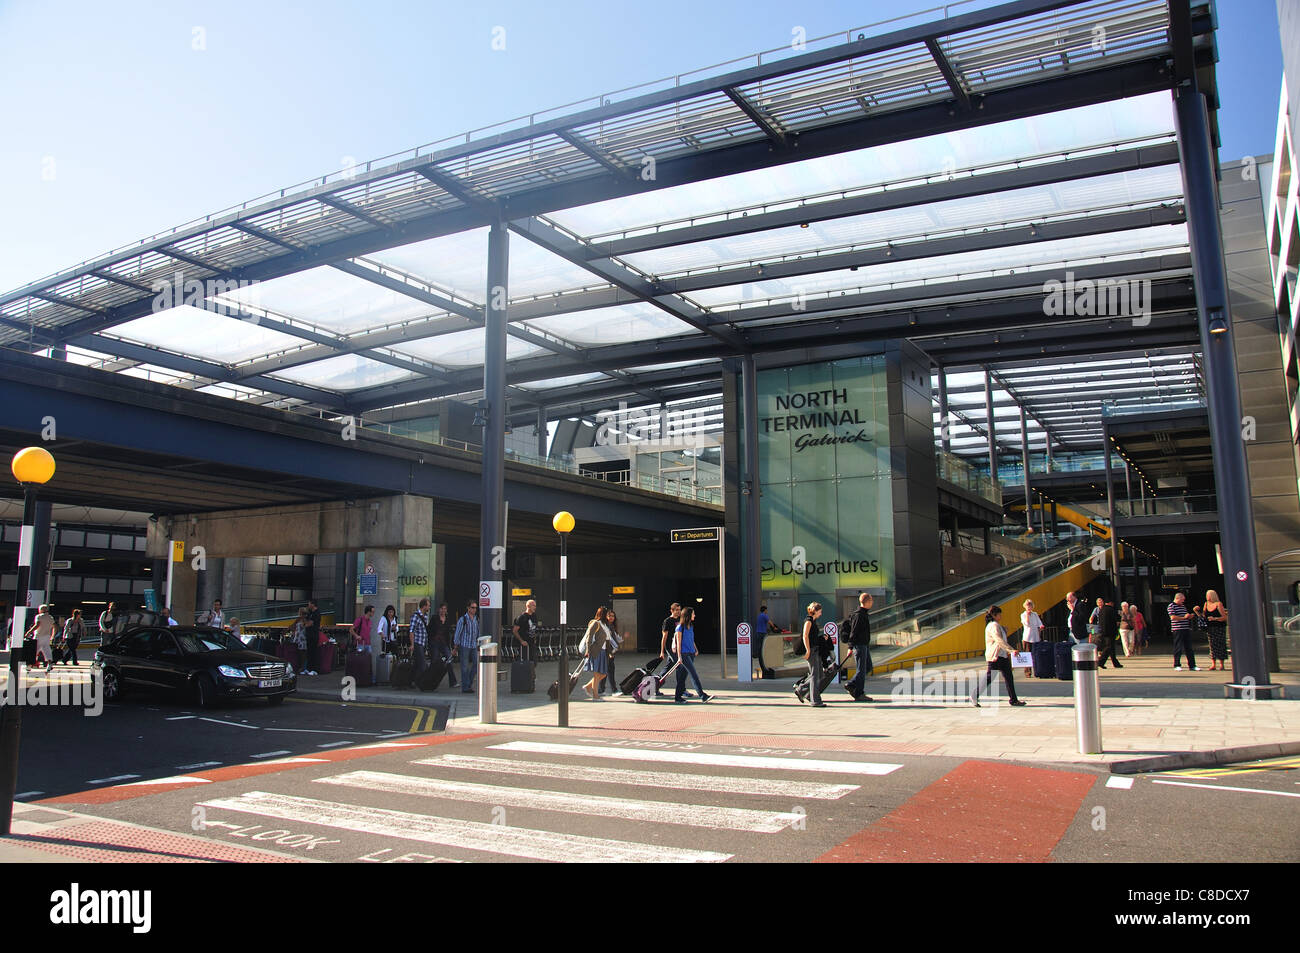 Departure level, North Terminal, London Gatwick Airport, Crawley, West Sussex, England, United Kingdom Stock Photo